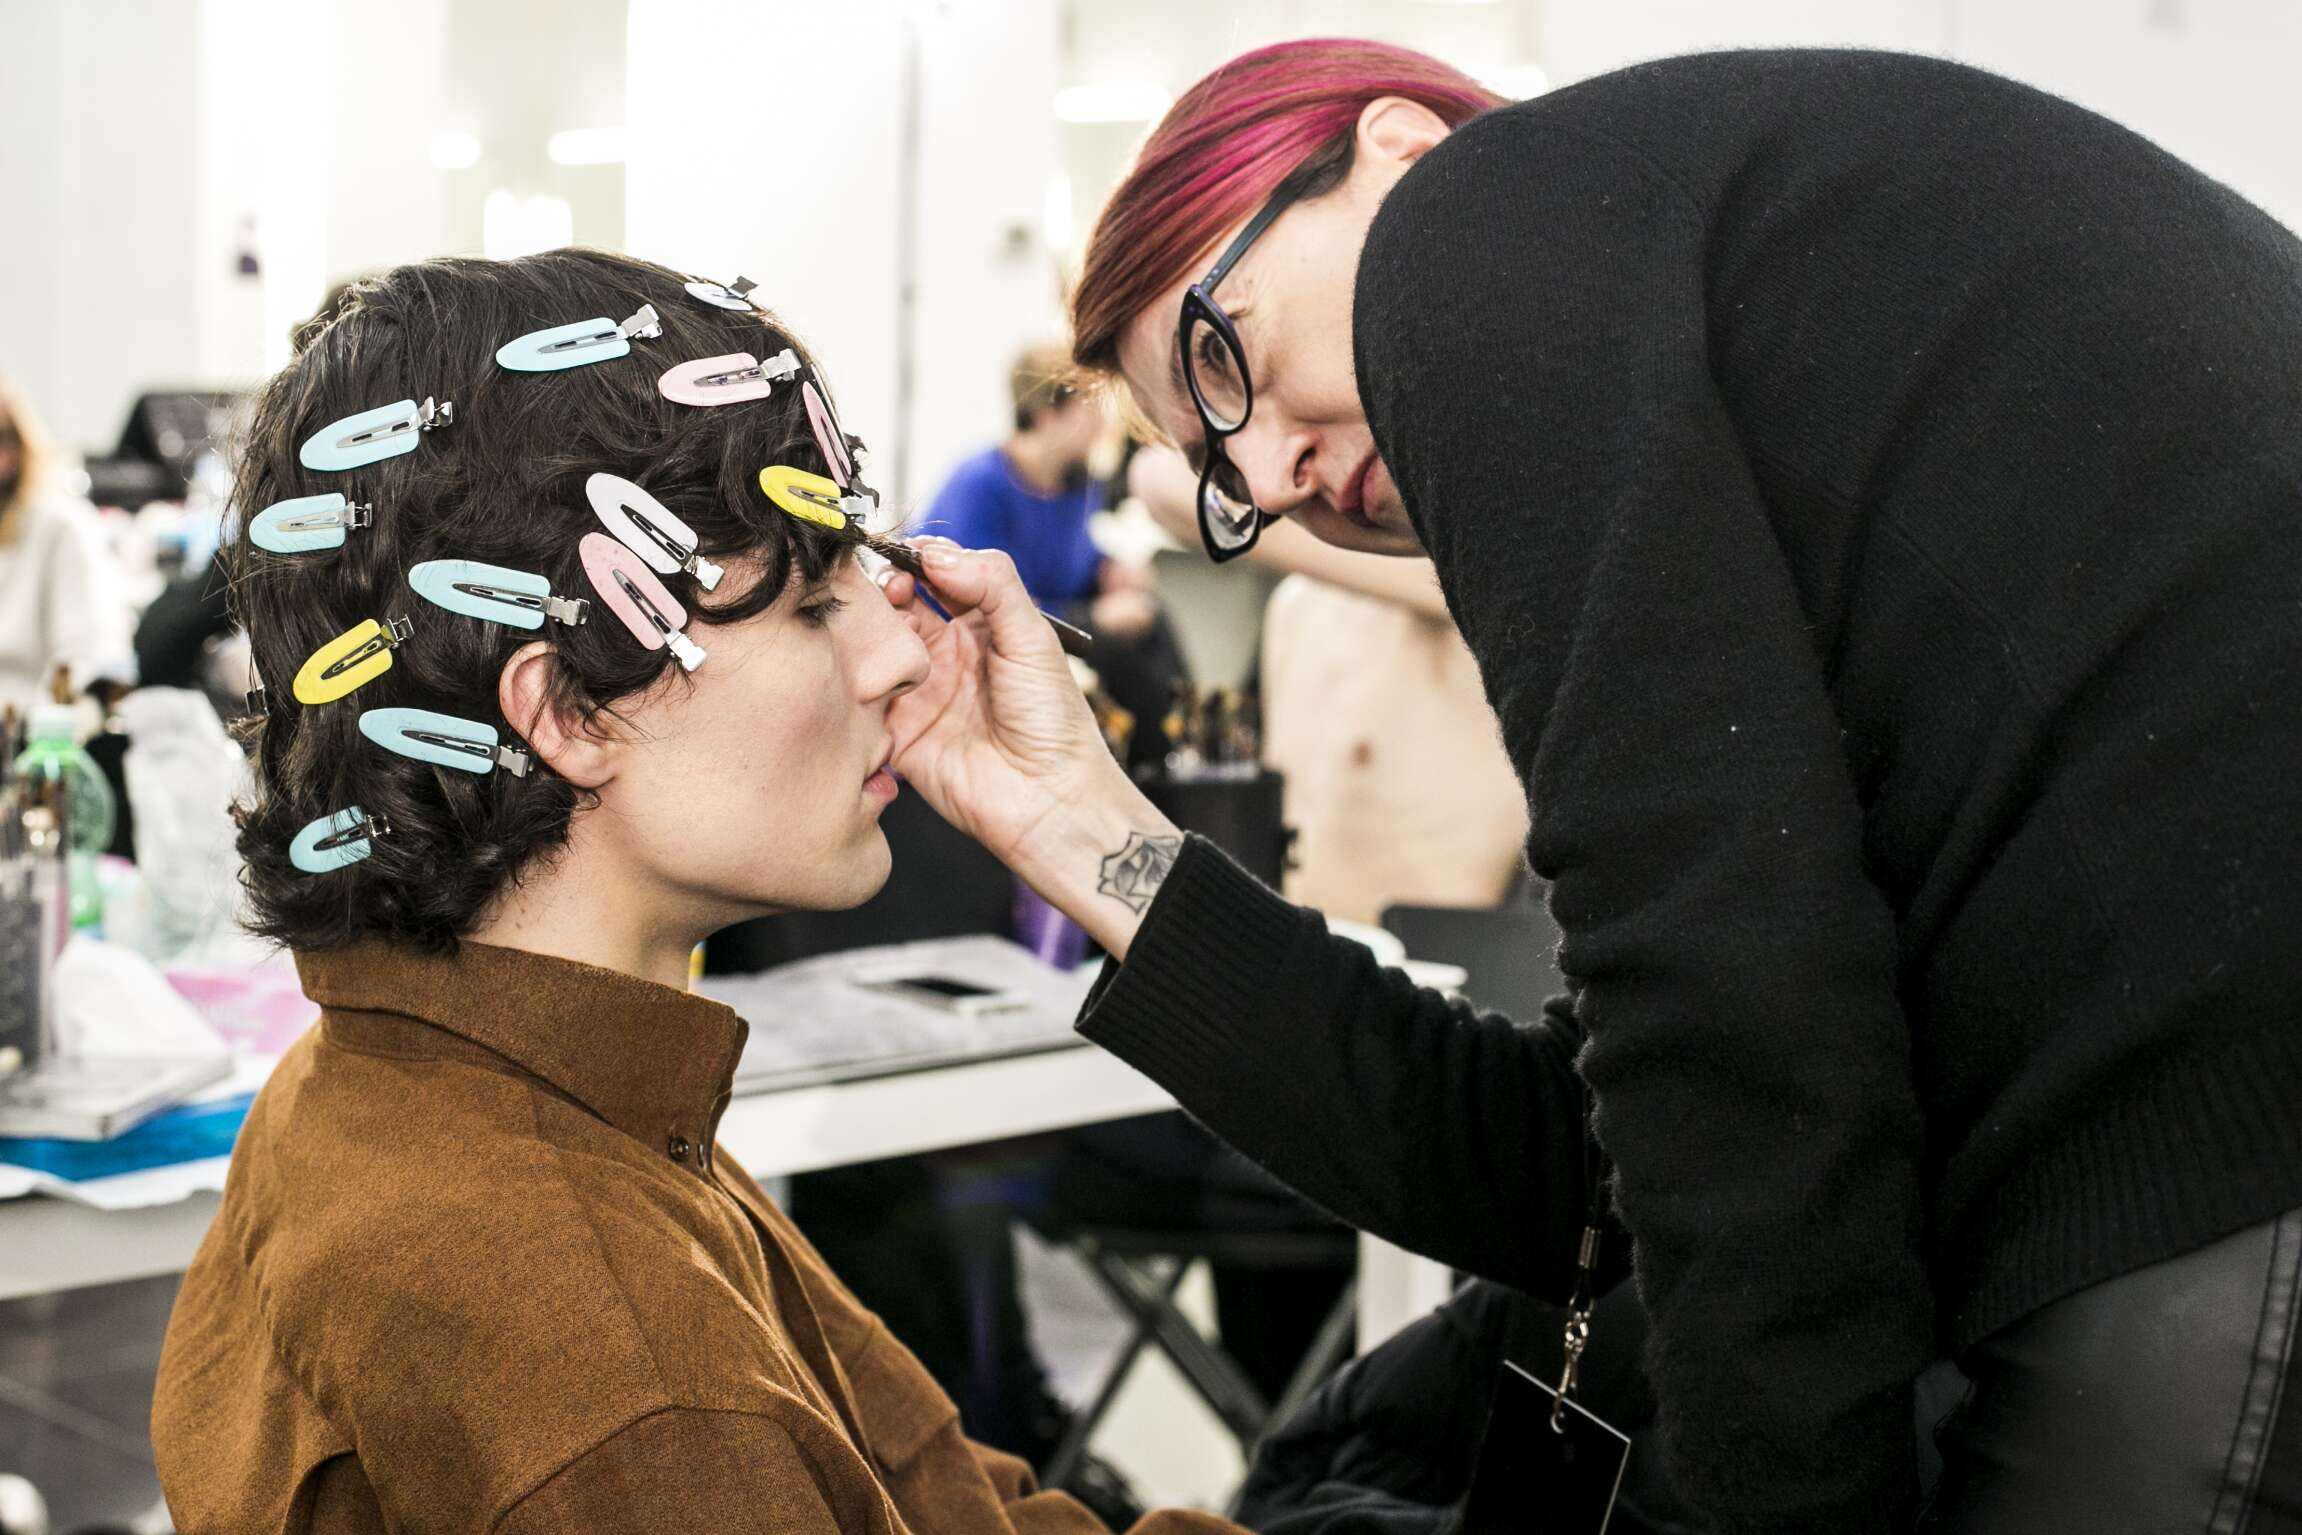 Backstage Ermenegildo Zegna Couture Models Make Up